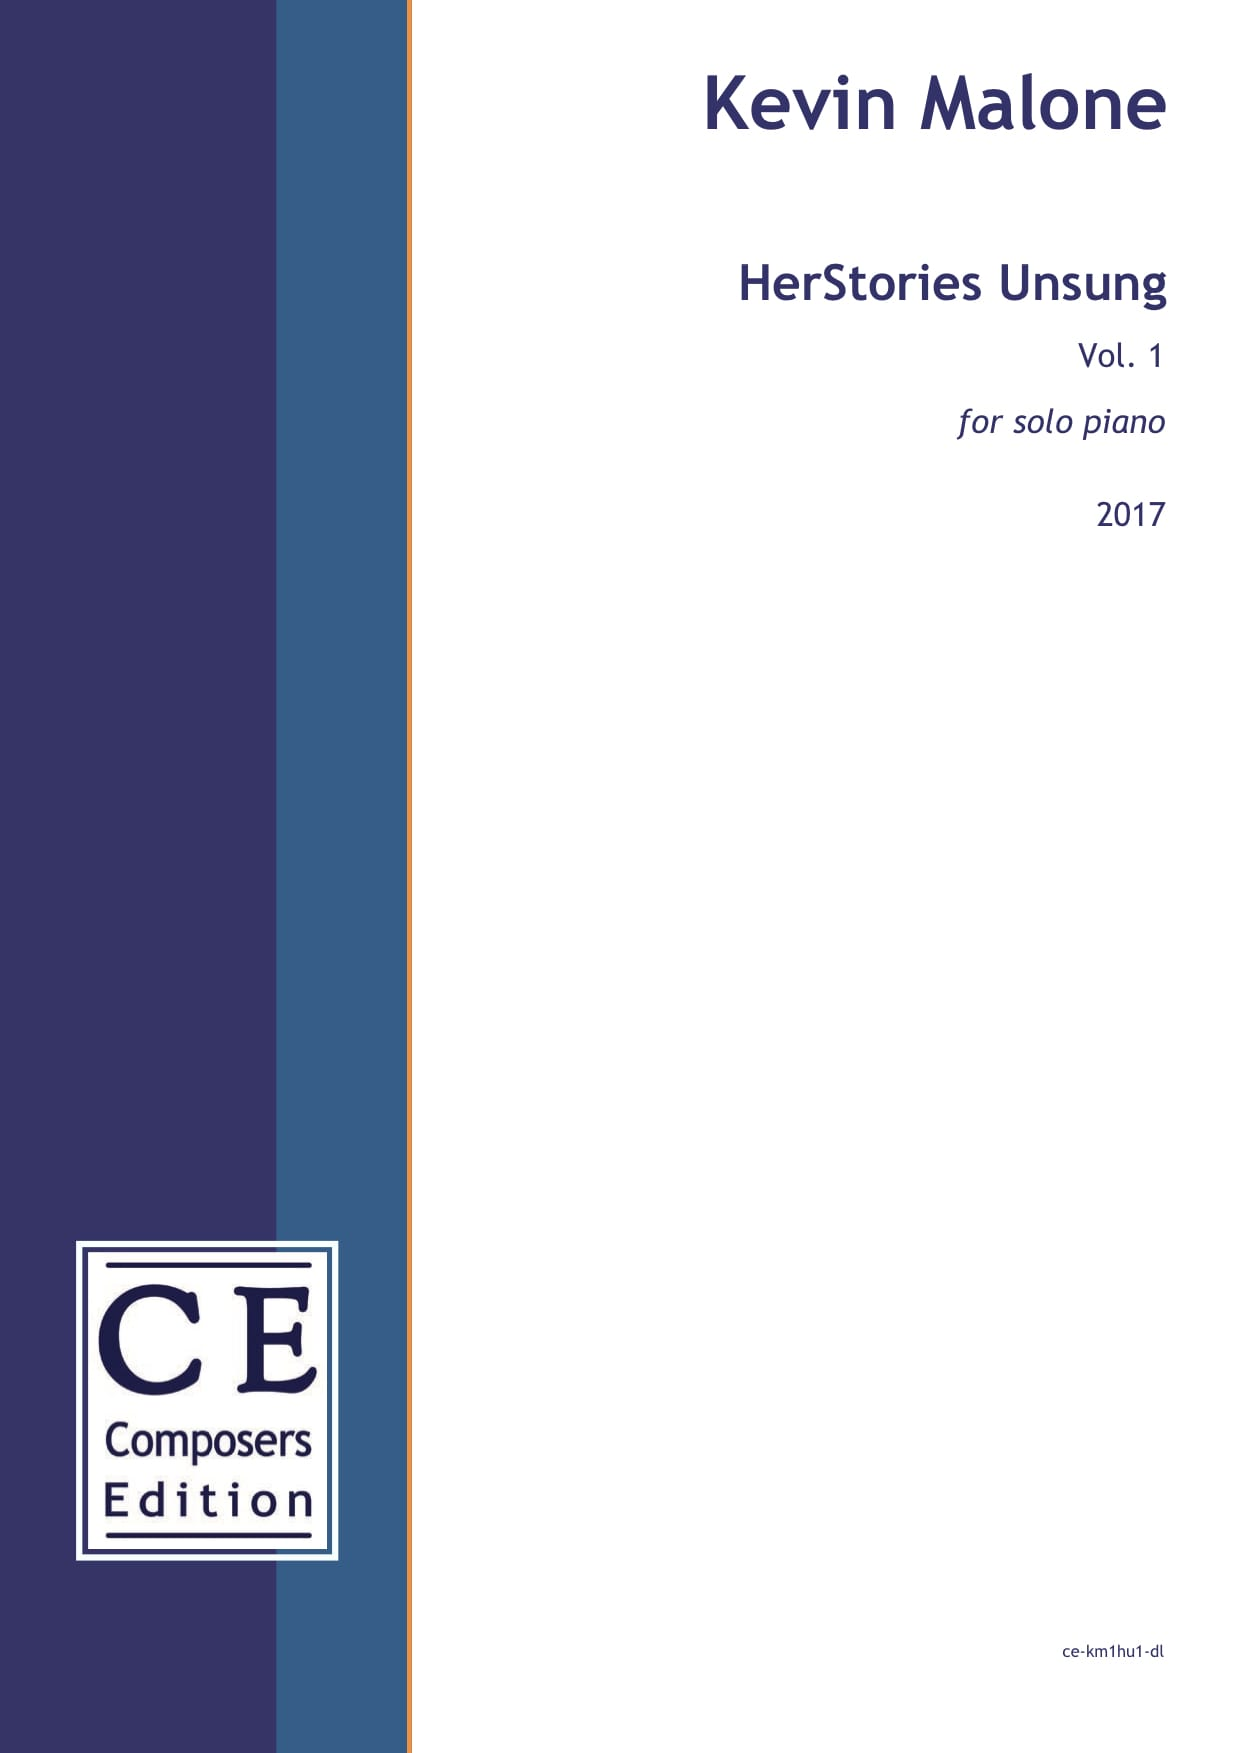 Kevin Malone: HerStories Unsung Vol. 1 for solo piano